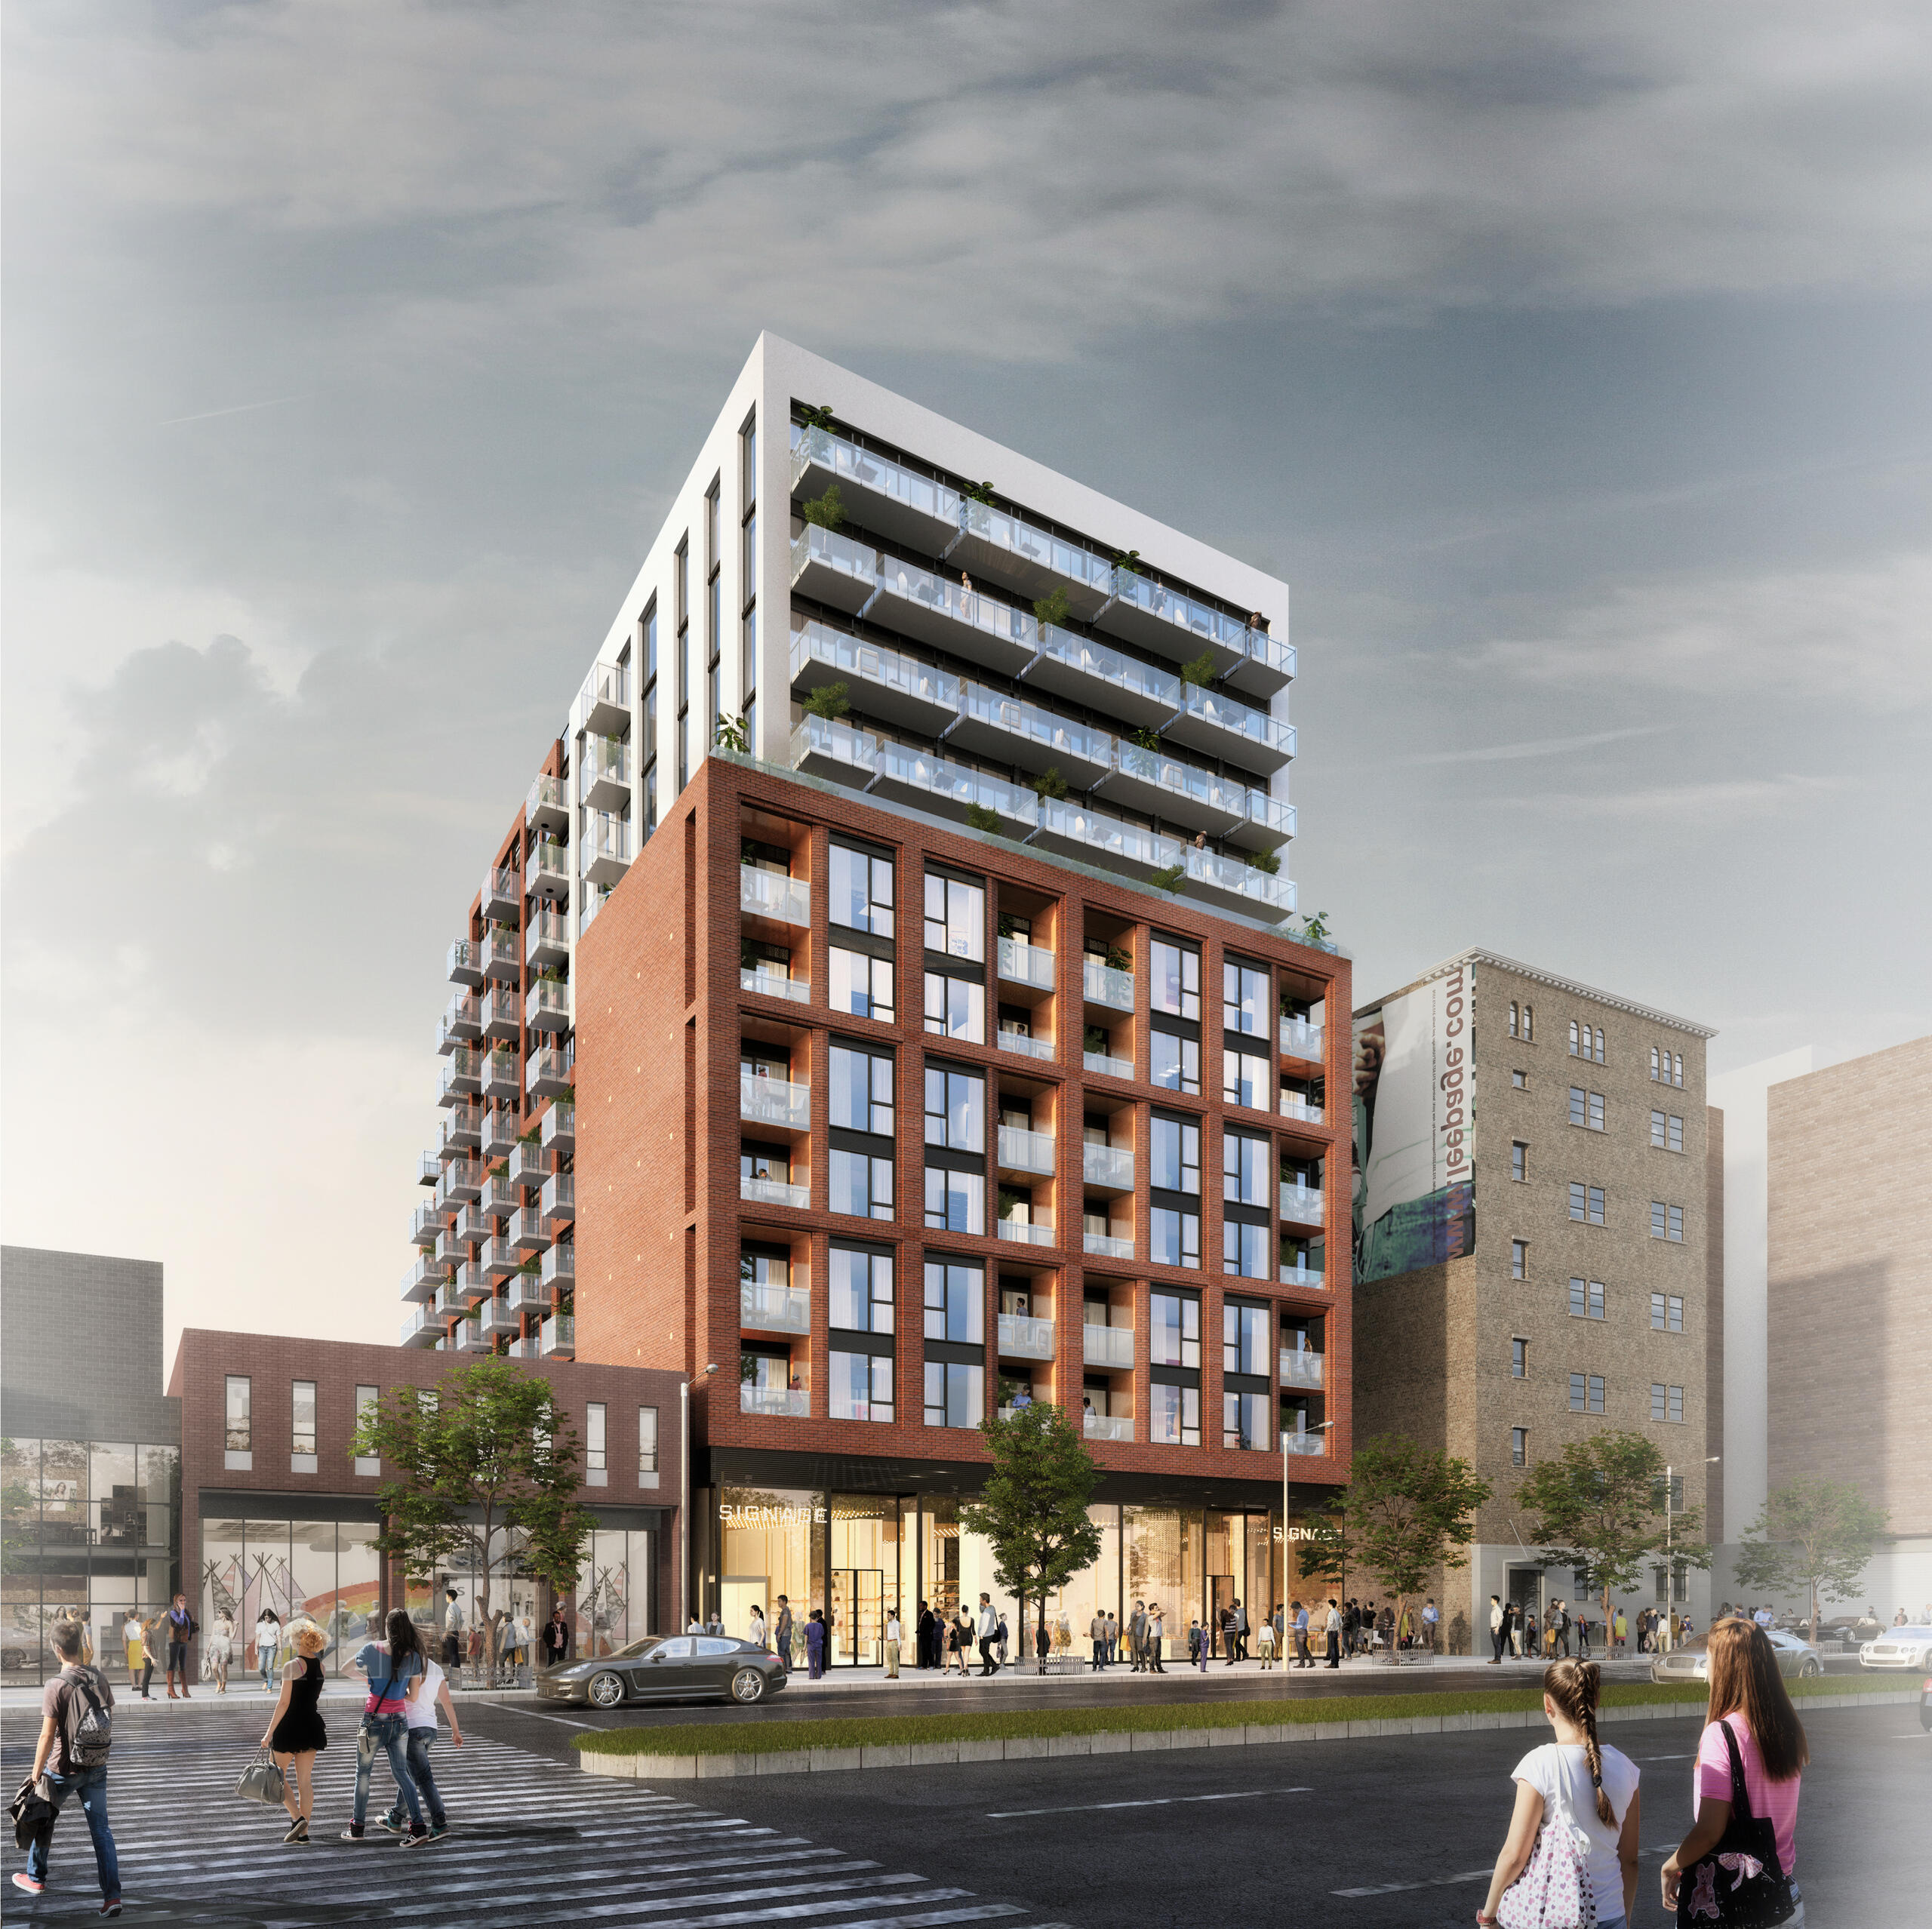 rendering, viewed from sidewalk across the street, of a 12-storey condo on a busy urban stretch with double-height glazed retail at grade, 6 storeys framed in red brick with inset balconies, and the top 4 floors set back with white cladding